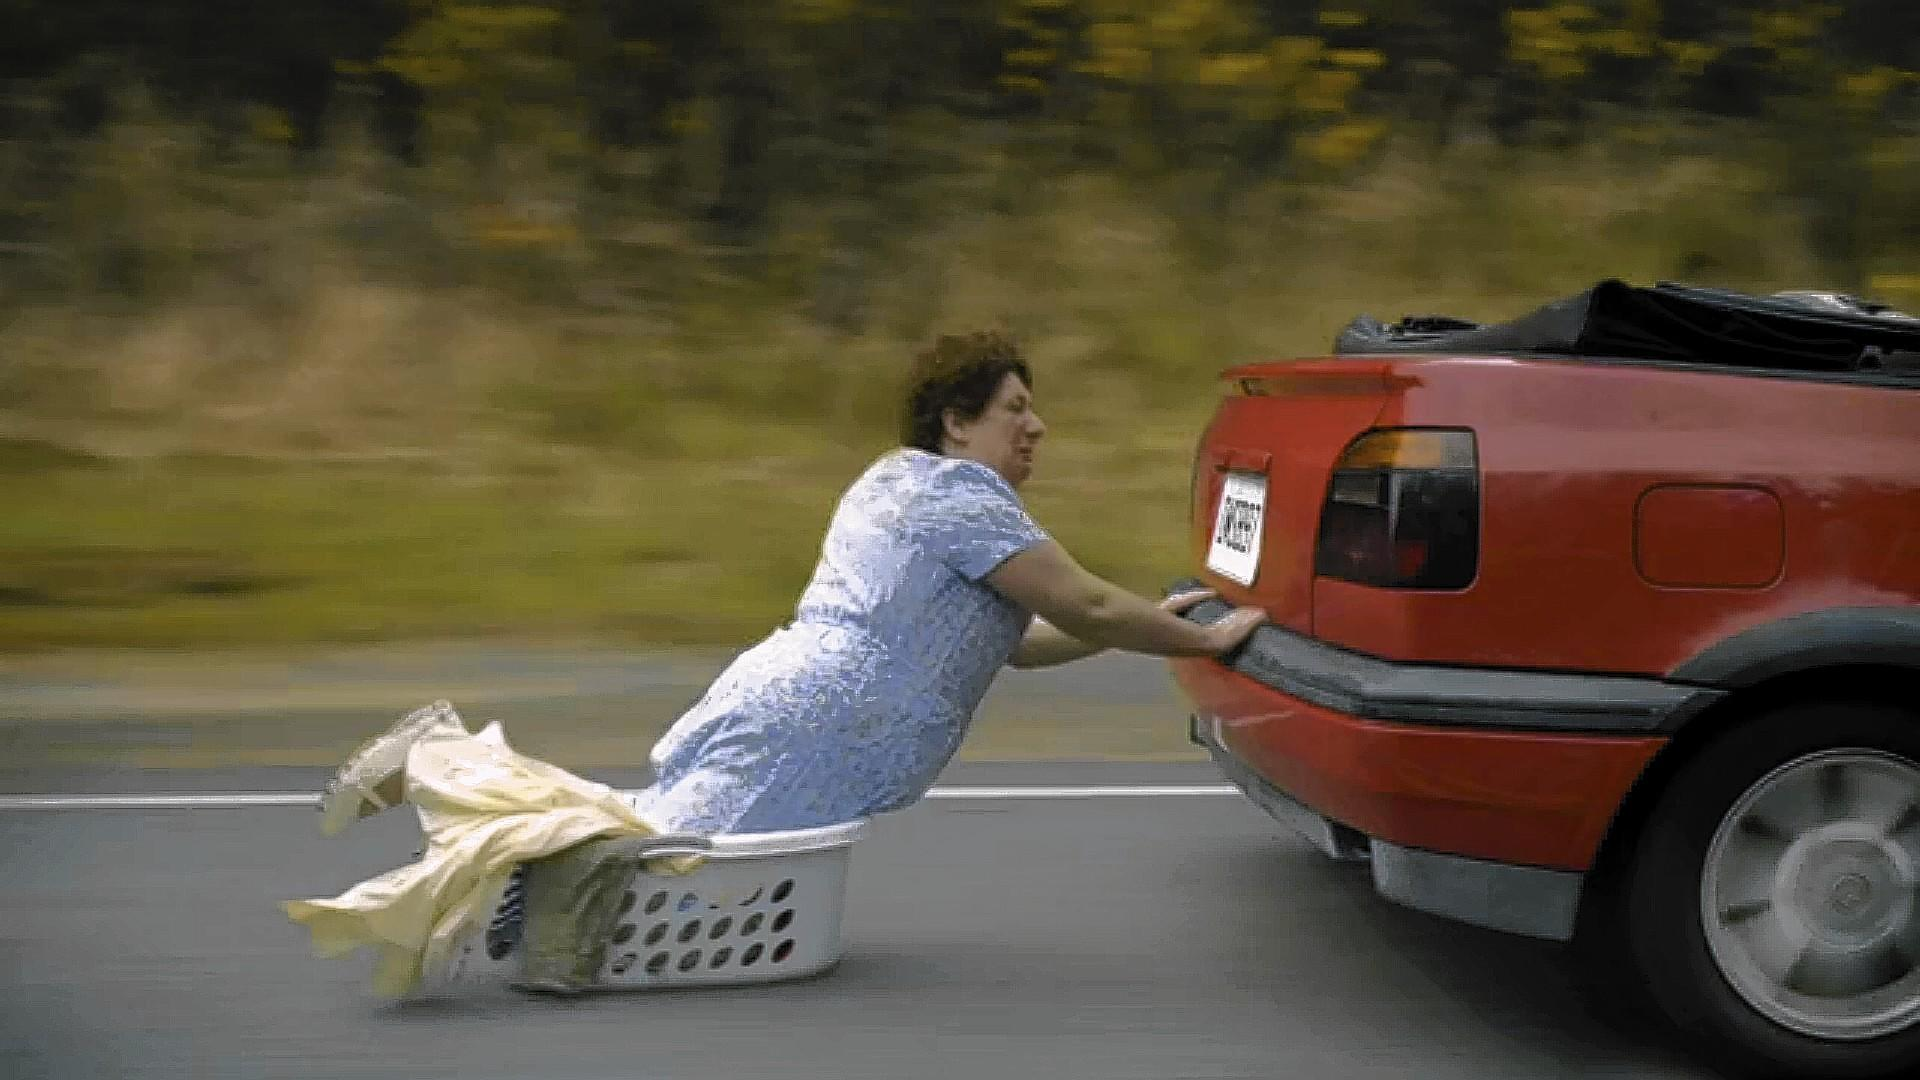 """A mother hangs onto the bumper of the car with her son and his girlfriend in an Old Spice """"Smellcome to Manhood"""" TV ad."""